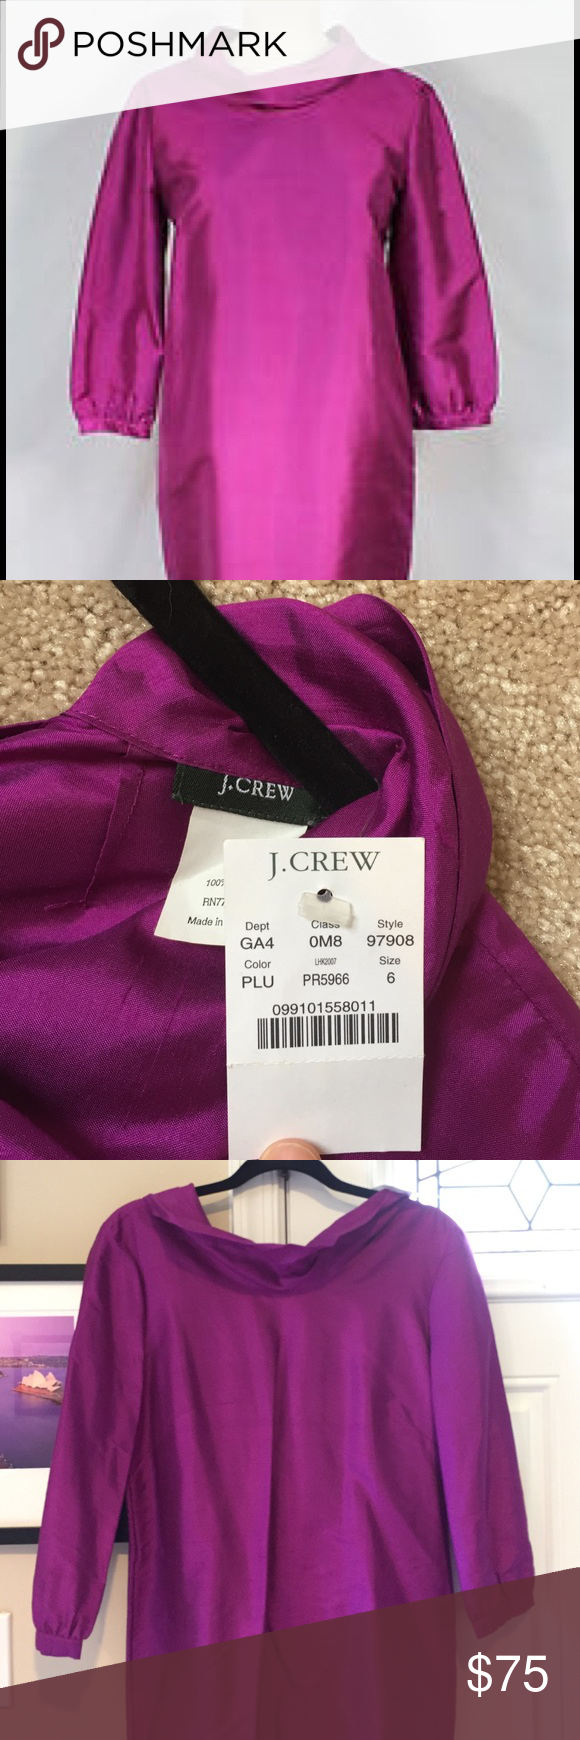 J. Crew 💯 % silk dress Perfect for the holidays. Roll neck sheath 100% silk dress in a beautiful plum color. Never been worn J. Crew Dresses Long Sleeve